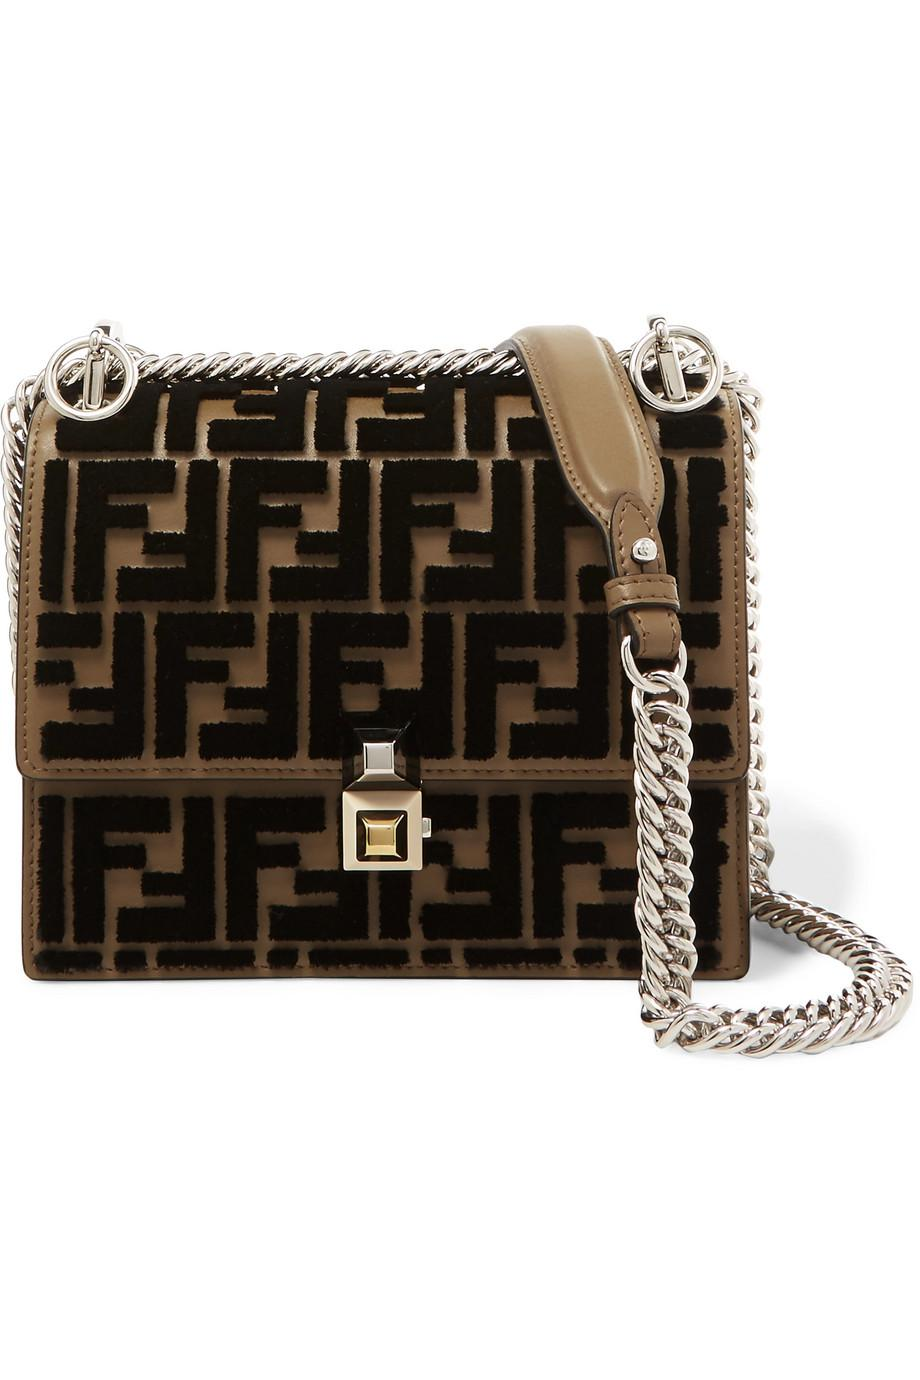 Kan I Small Flocked Leather Shoulder Bag - Brown Fendi gzyq4crBC